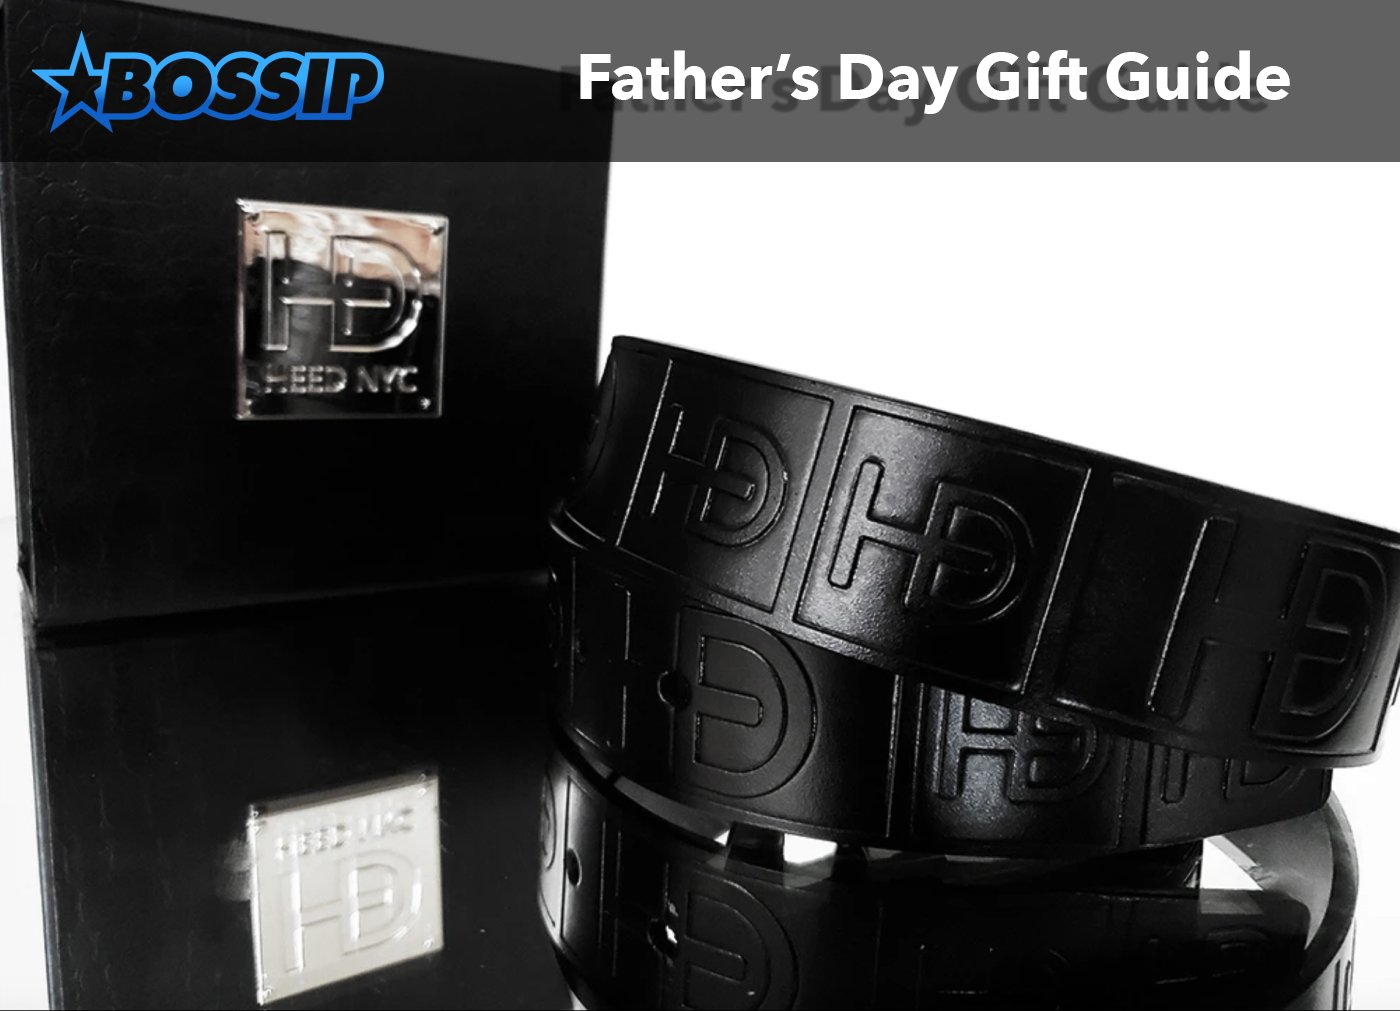 BOSSIP Father's Day Gift Guide